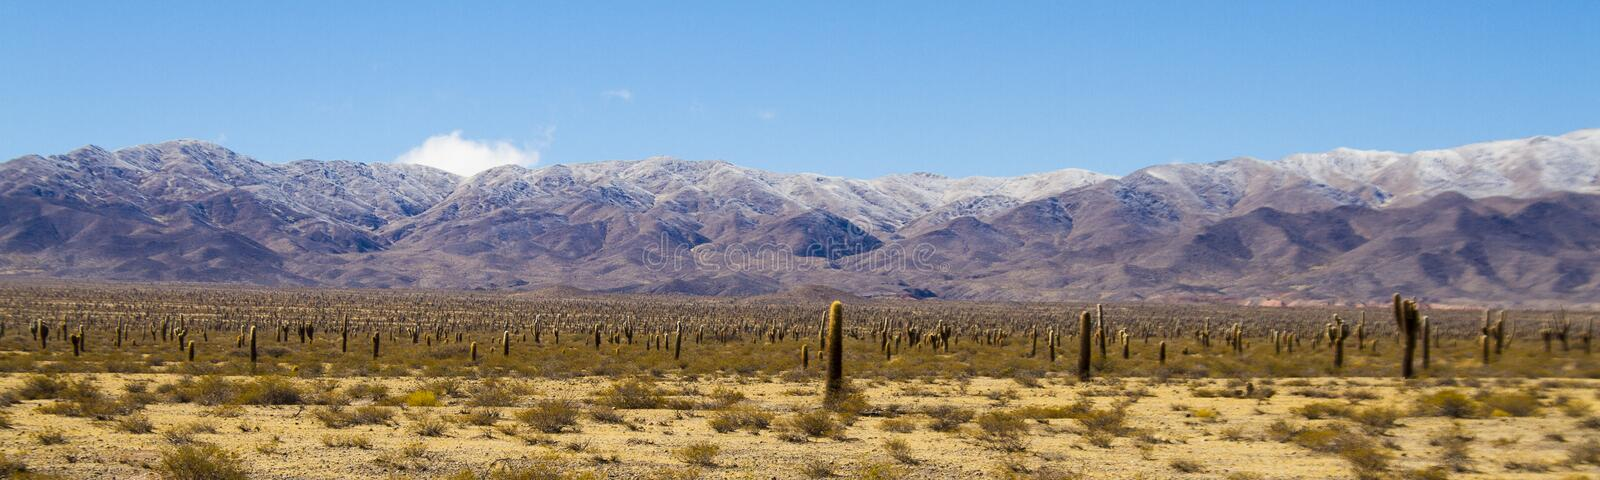 Large cardones in the valley royalty free stock images